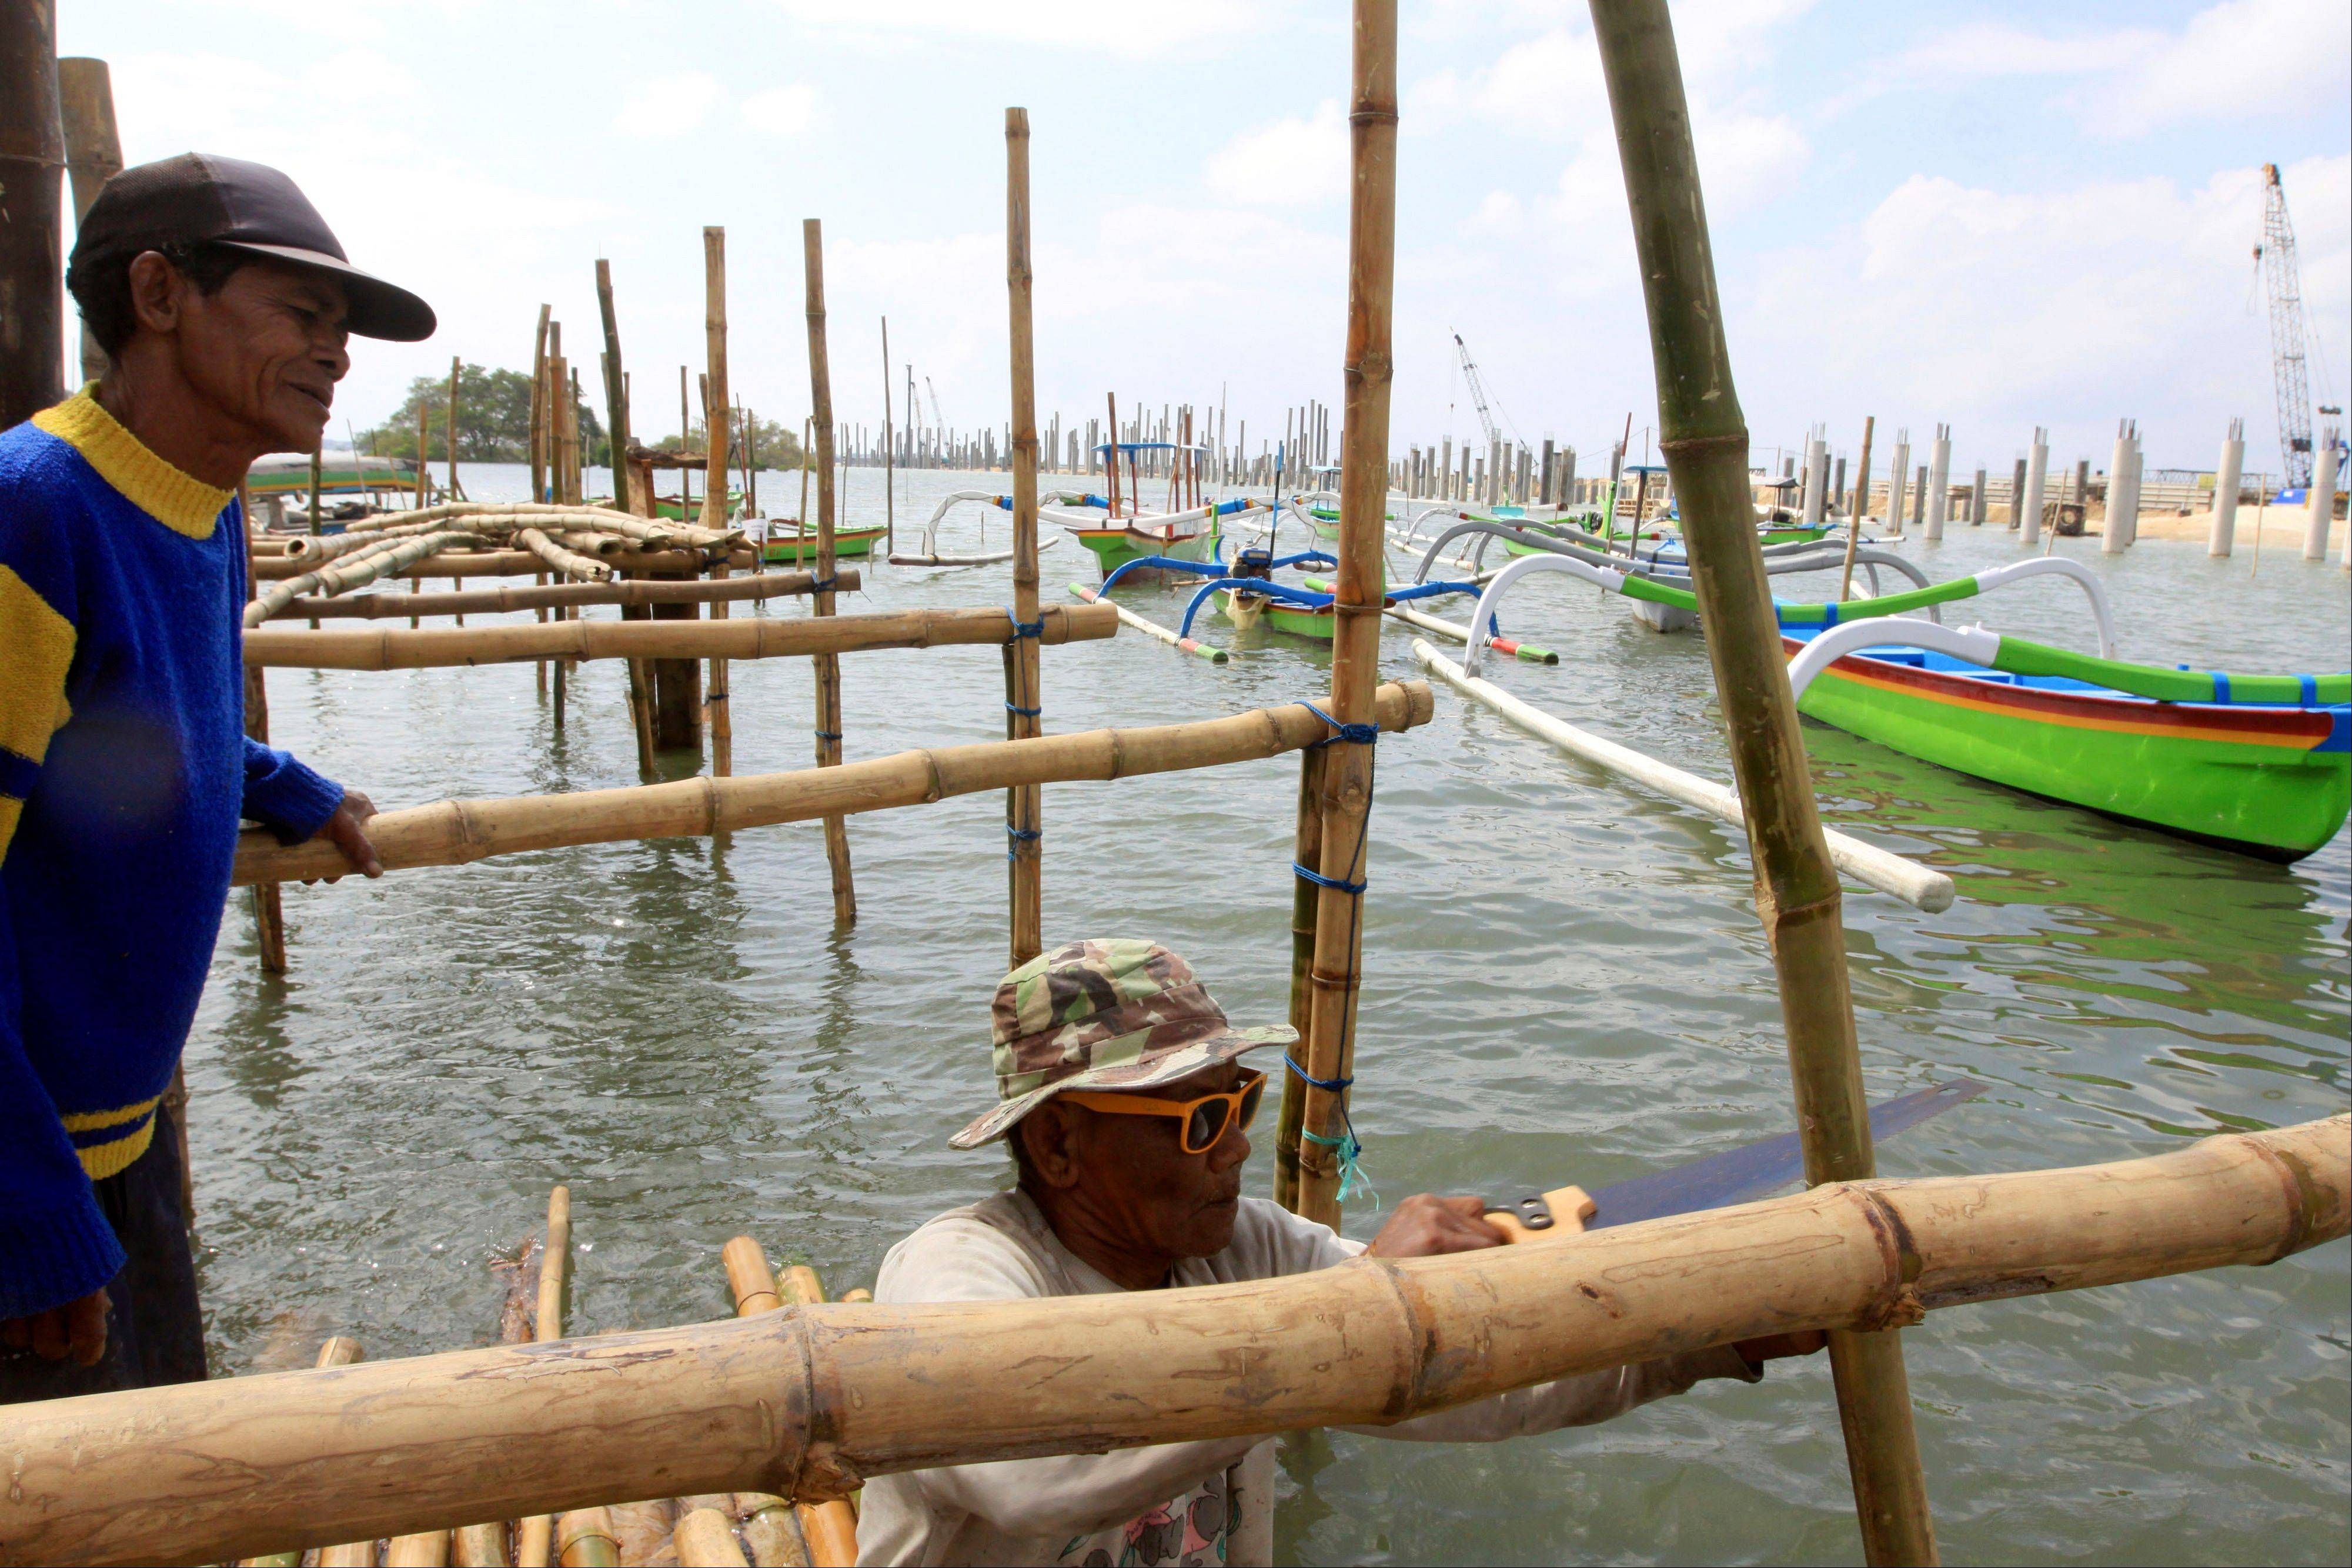 Balinese men build a bamboo bridge next to a road construction site in Kuta, Bali.